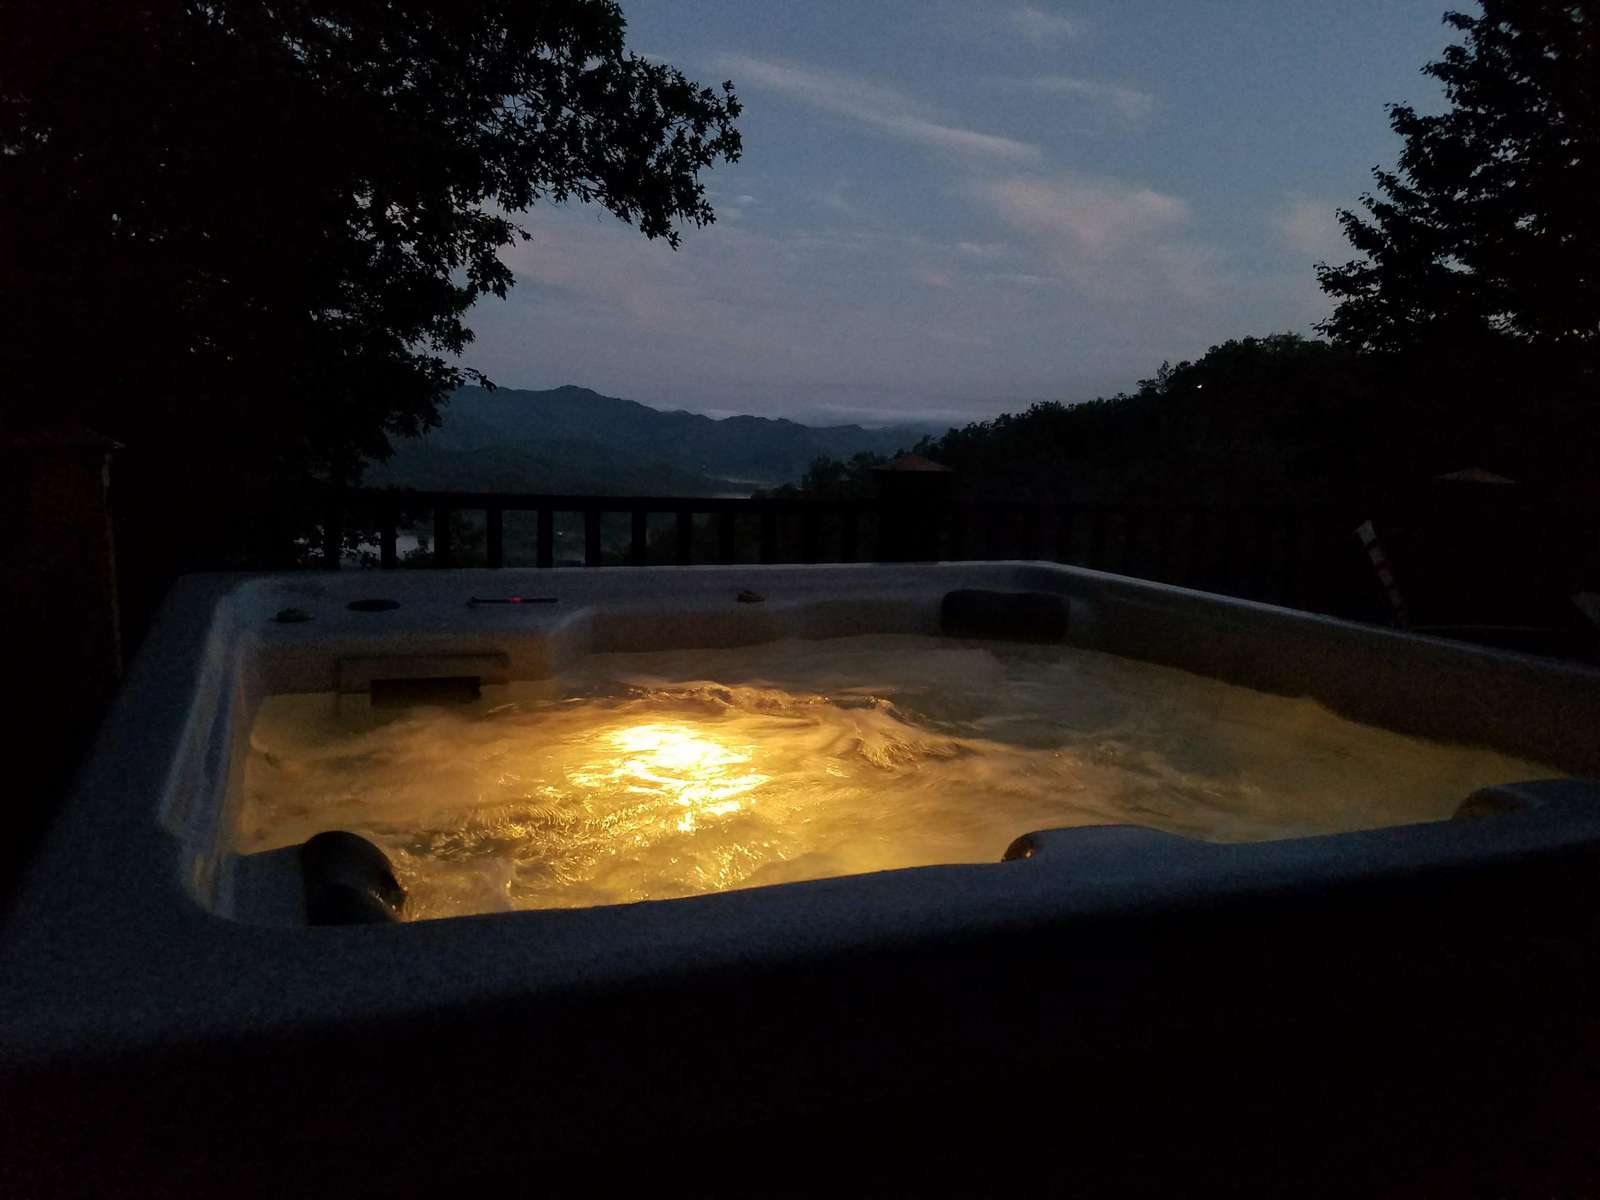 Evening View of the Hot Tub